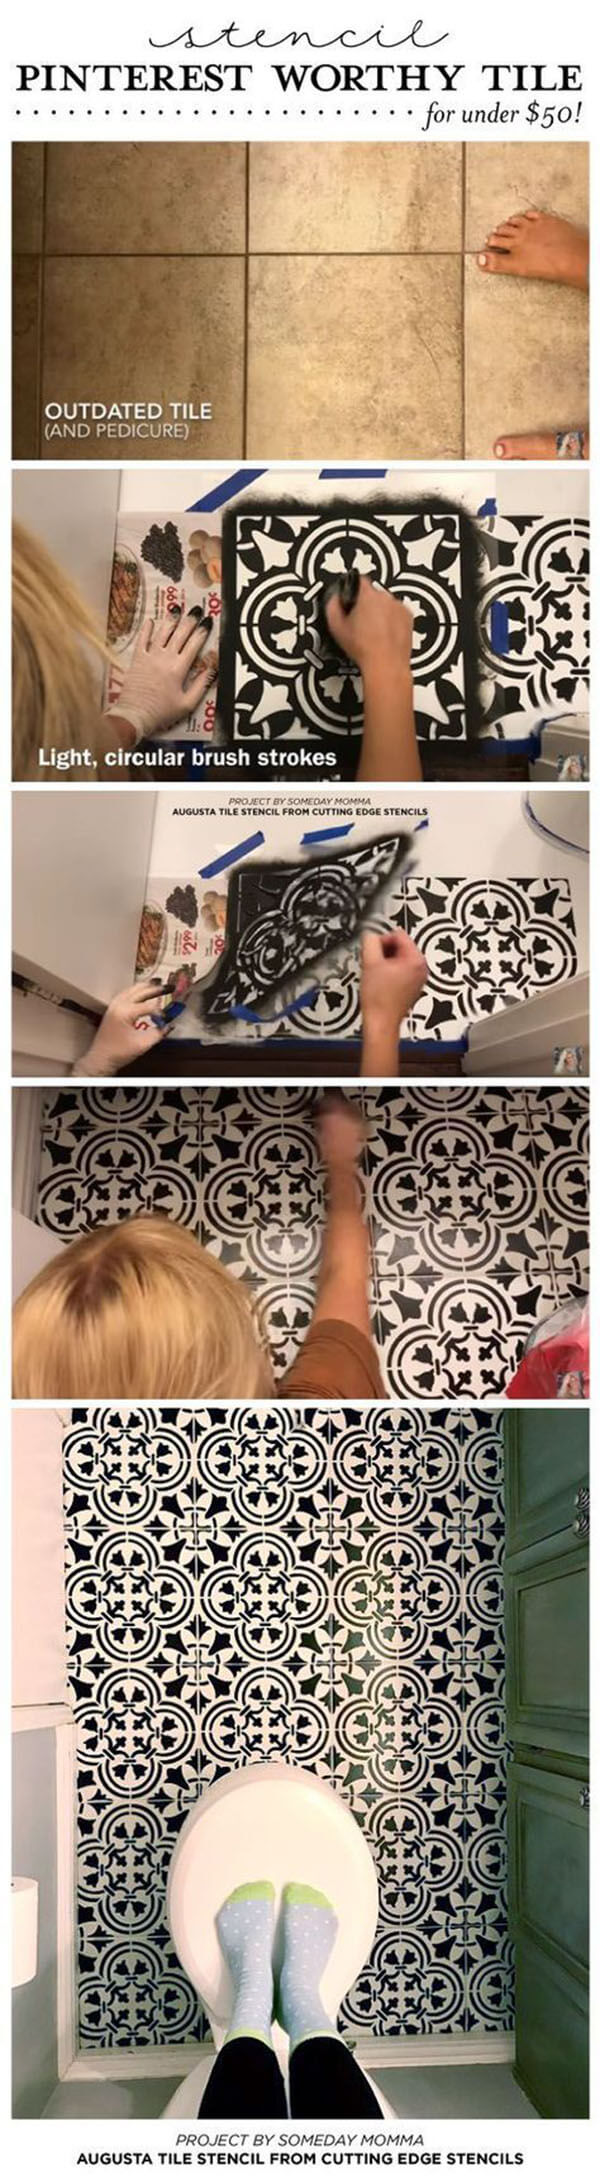 Create Old World Mosaic Floor with Stencils